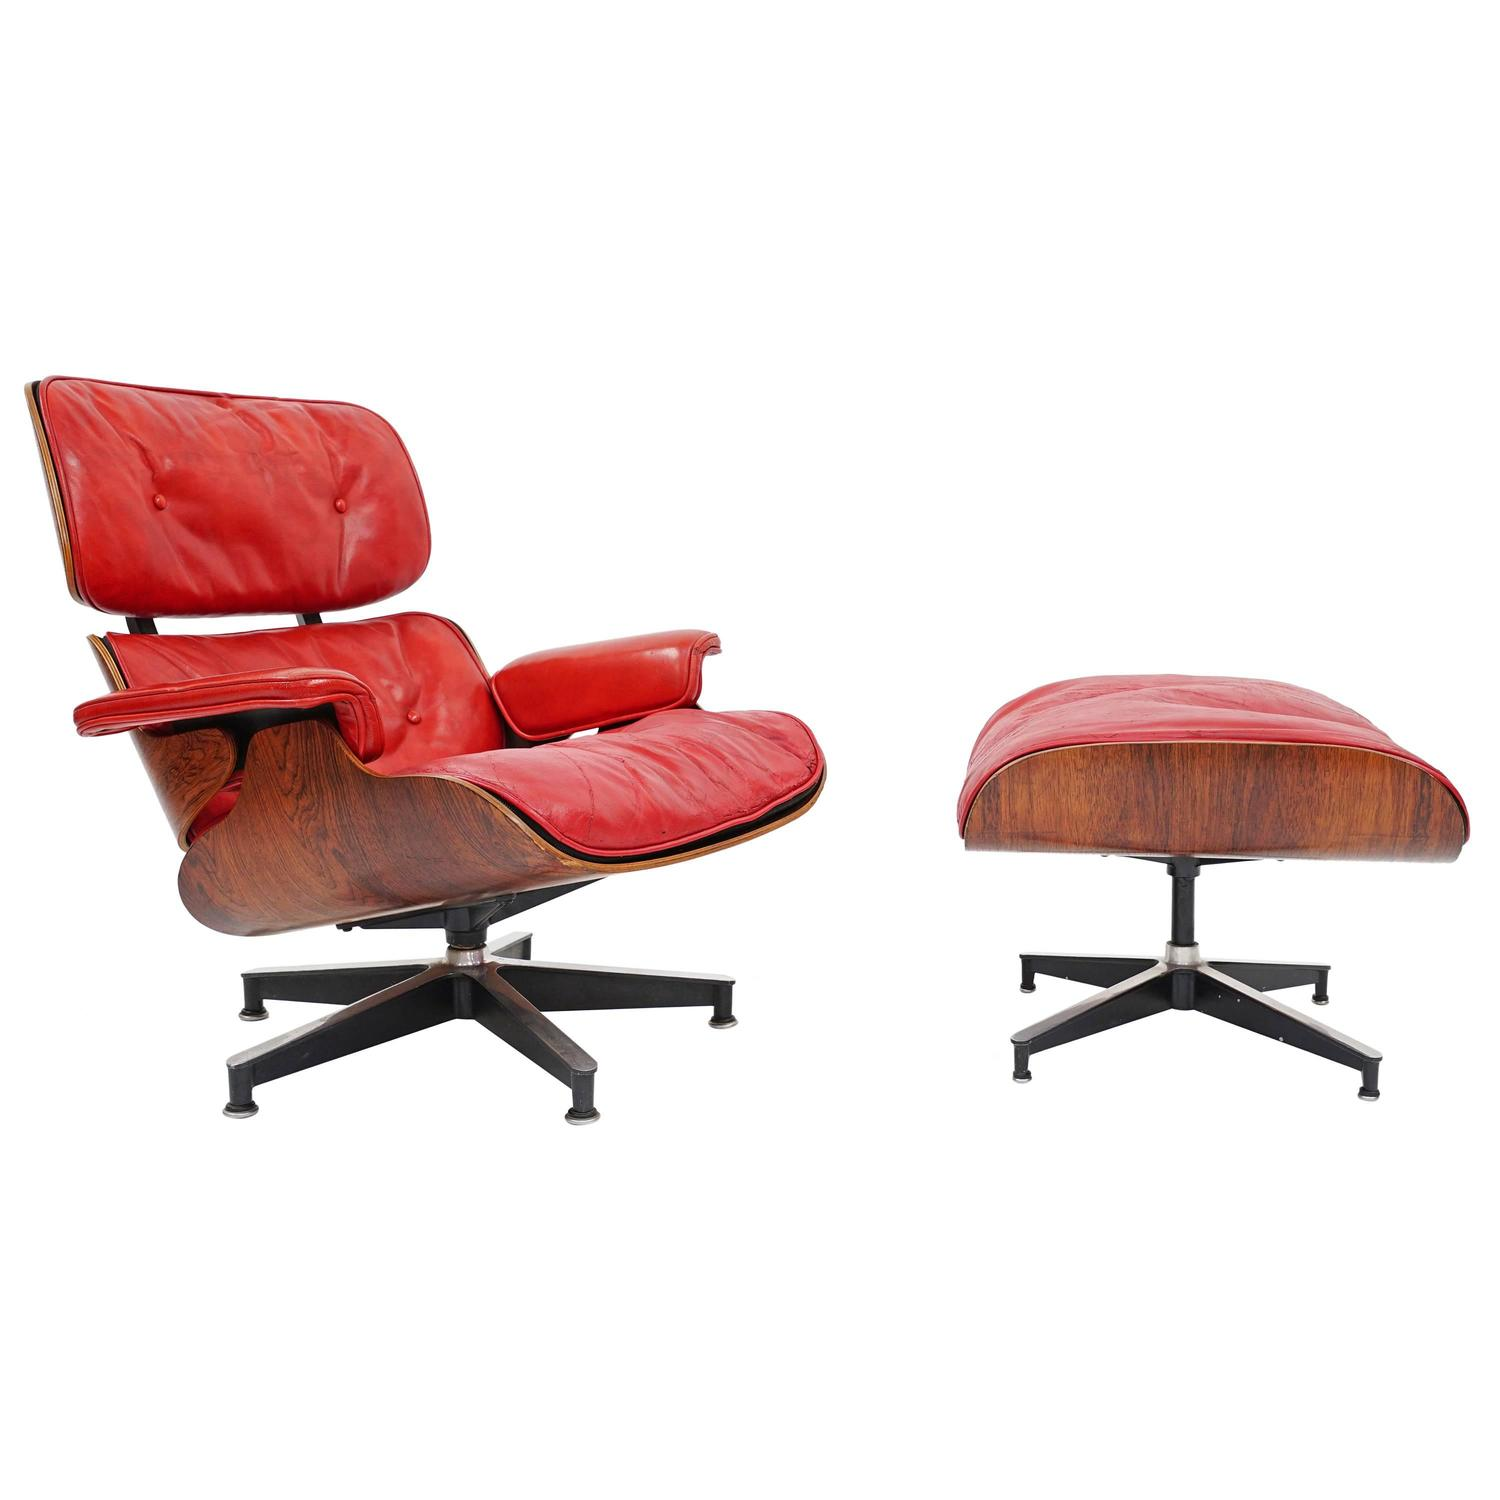 "Rare ""Pepsi Red"" Eames Lounge Chair by Herman Miller for Pepsi Co"